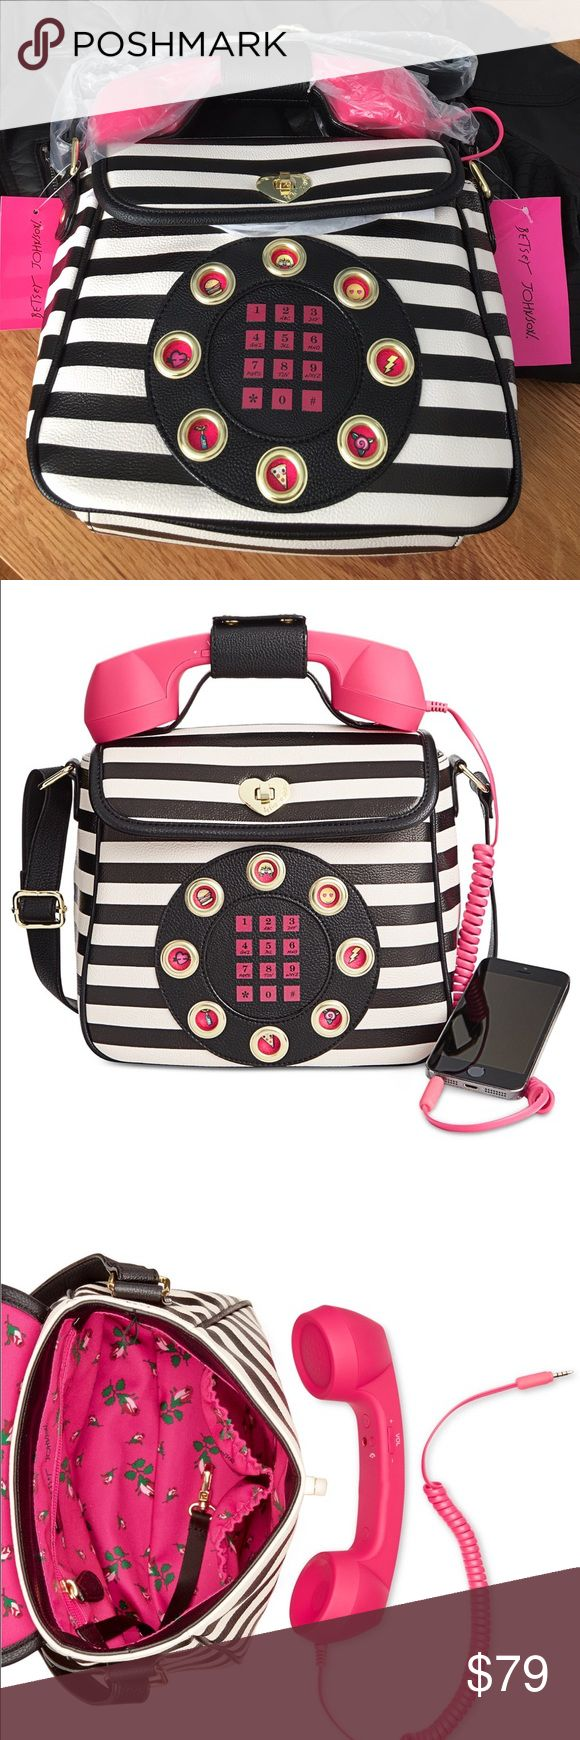 Betsey Johnson phone cross body purse! I am obsessed with this:) The phone is detachable and can be attached to your cell to work as a real phone! So much fun:) Betsey Johnson Bags Crossbody Bags